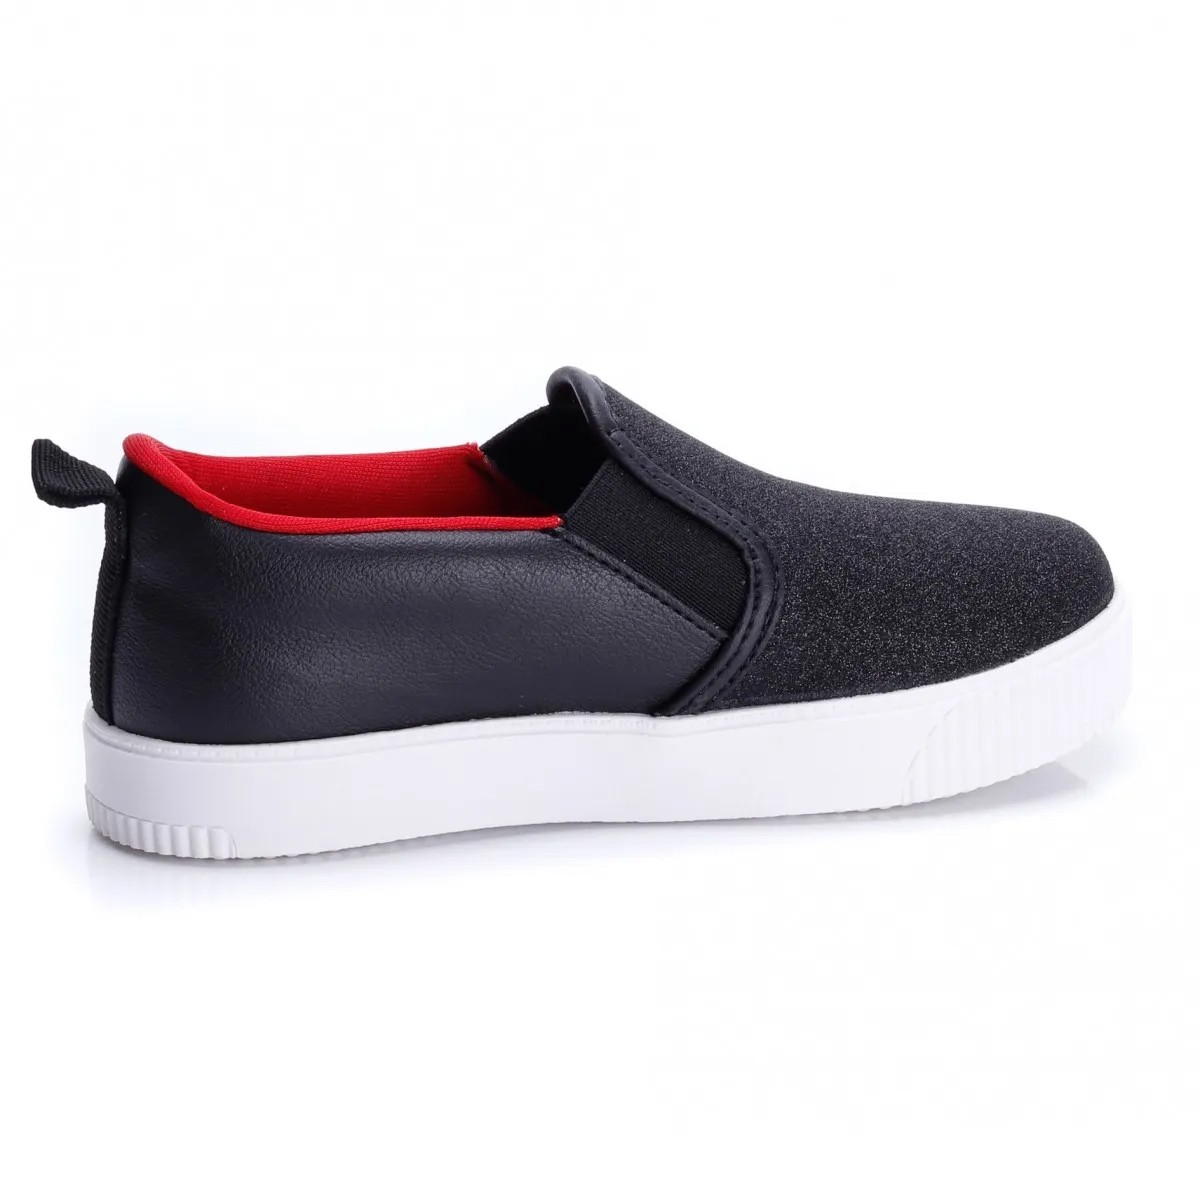 Tenis Pampili Now United Slip On Preto